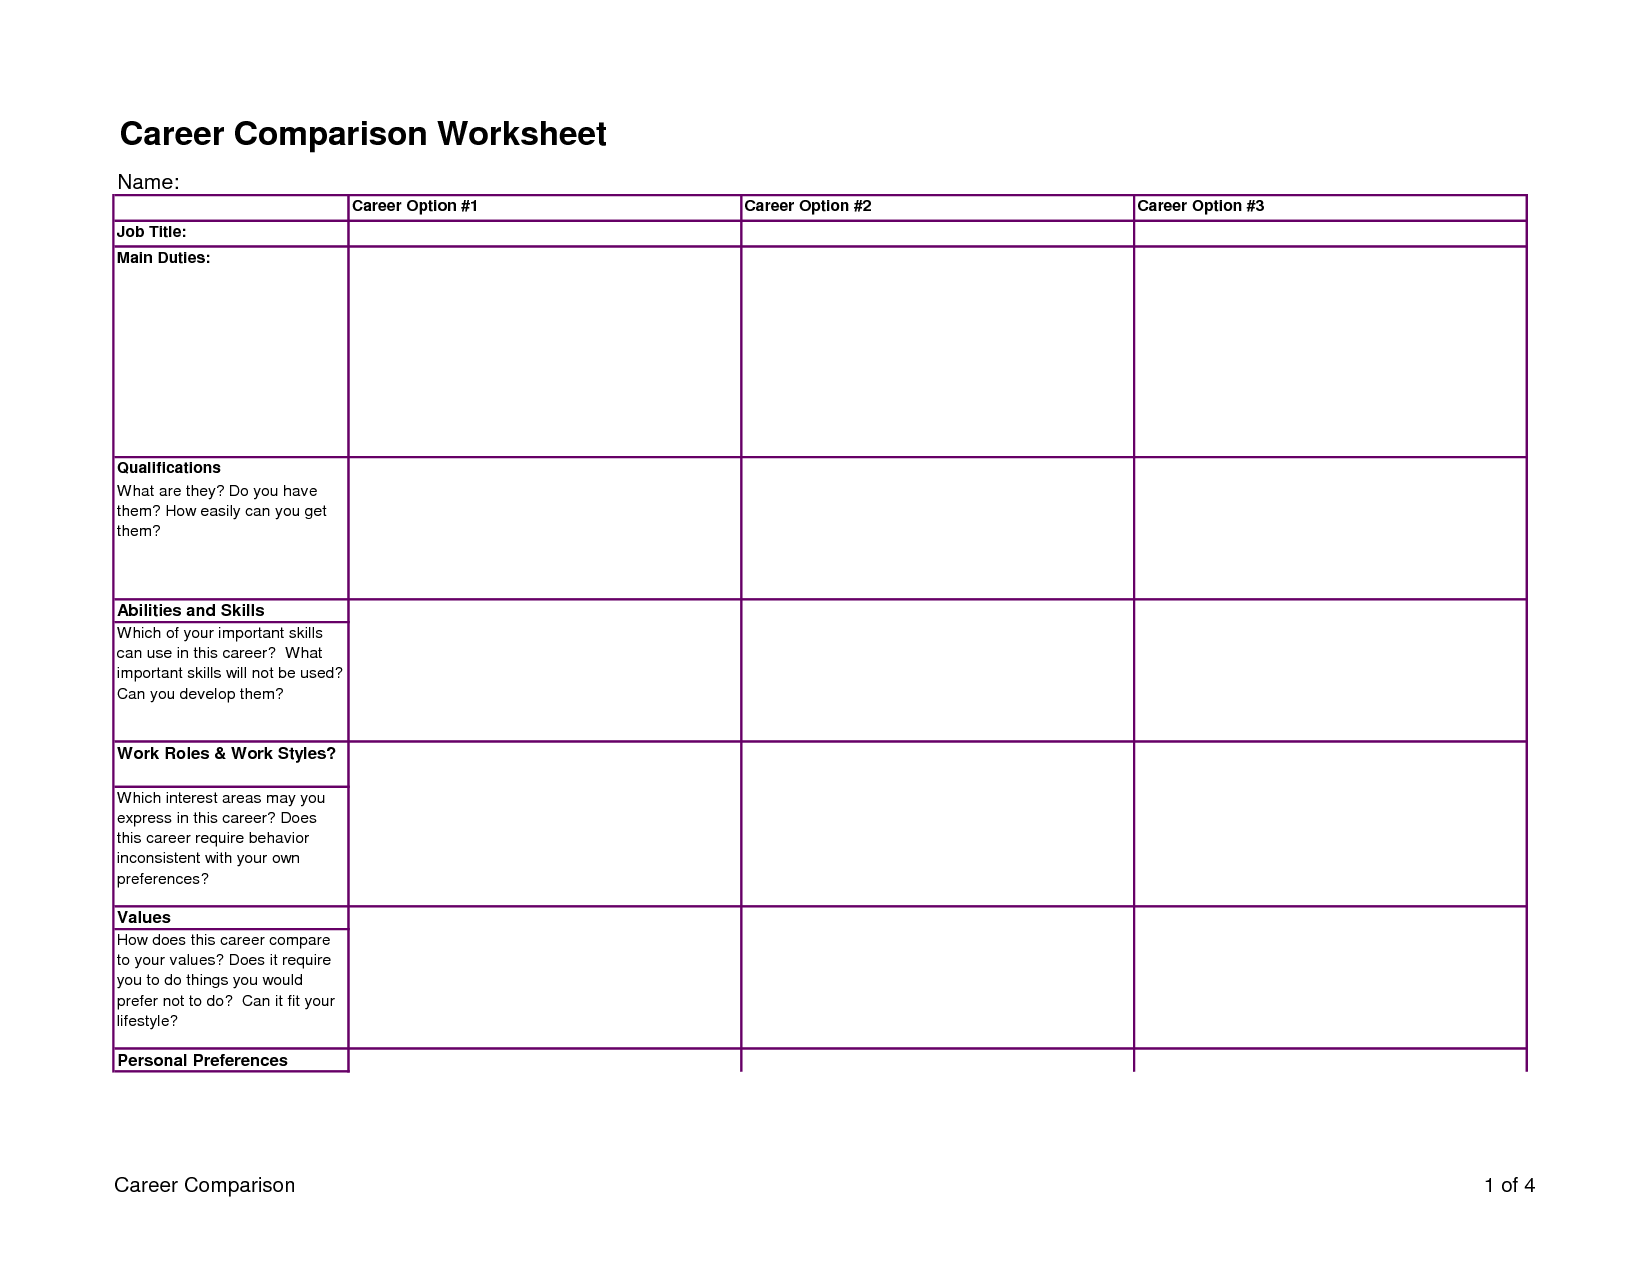 Decisional Balance Worksheet Motivational Interviewing K Kp